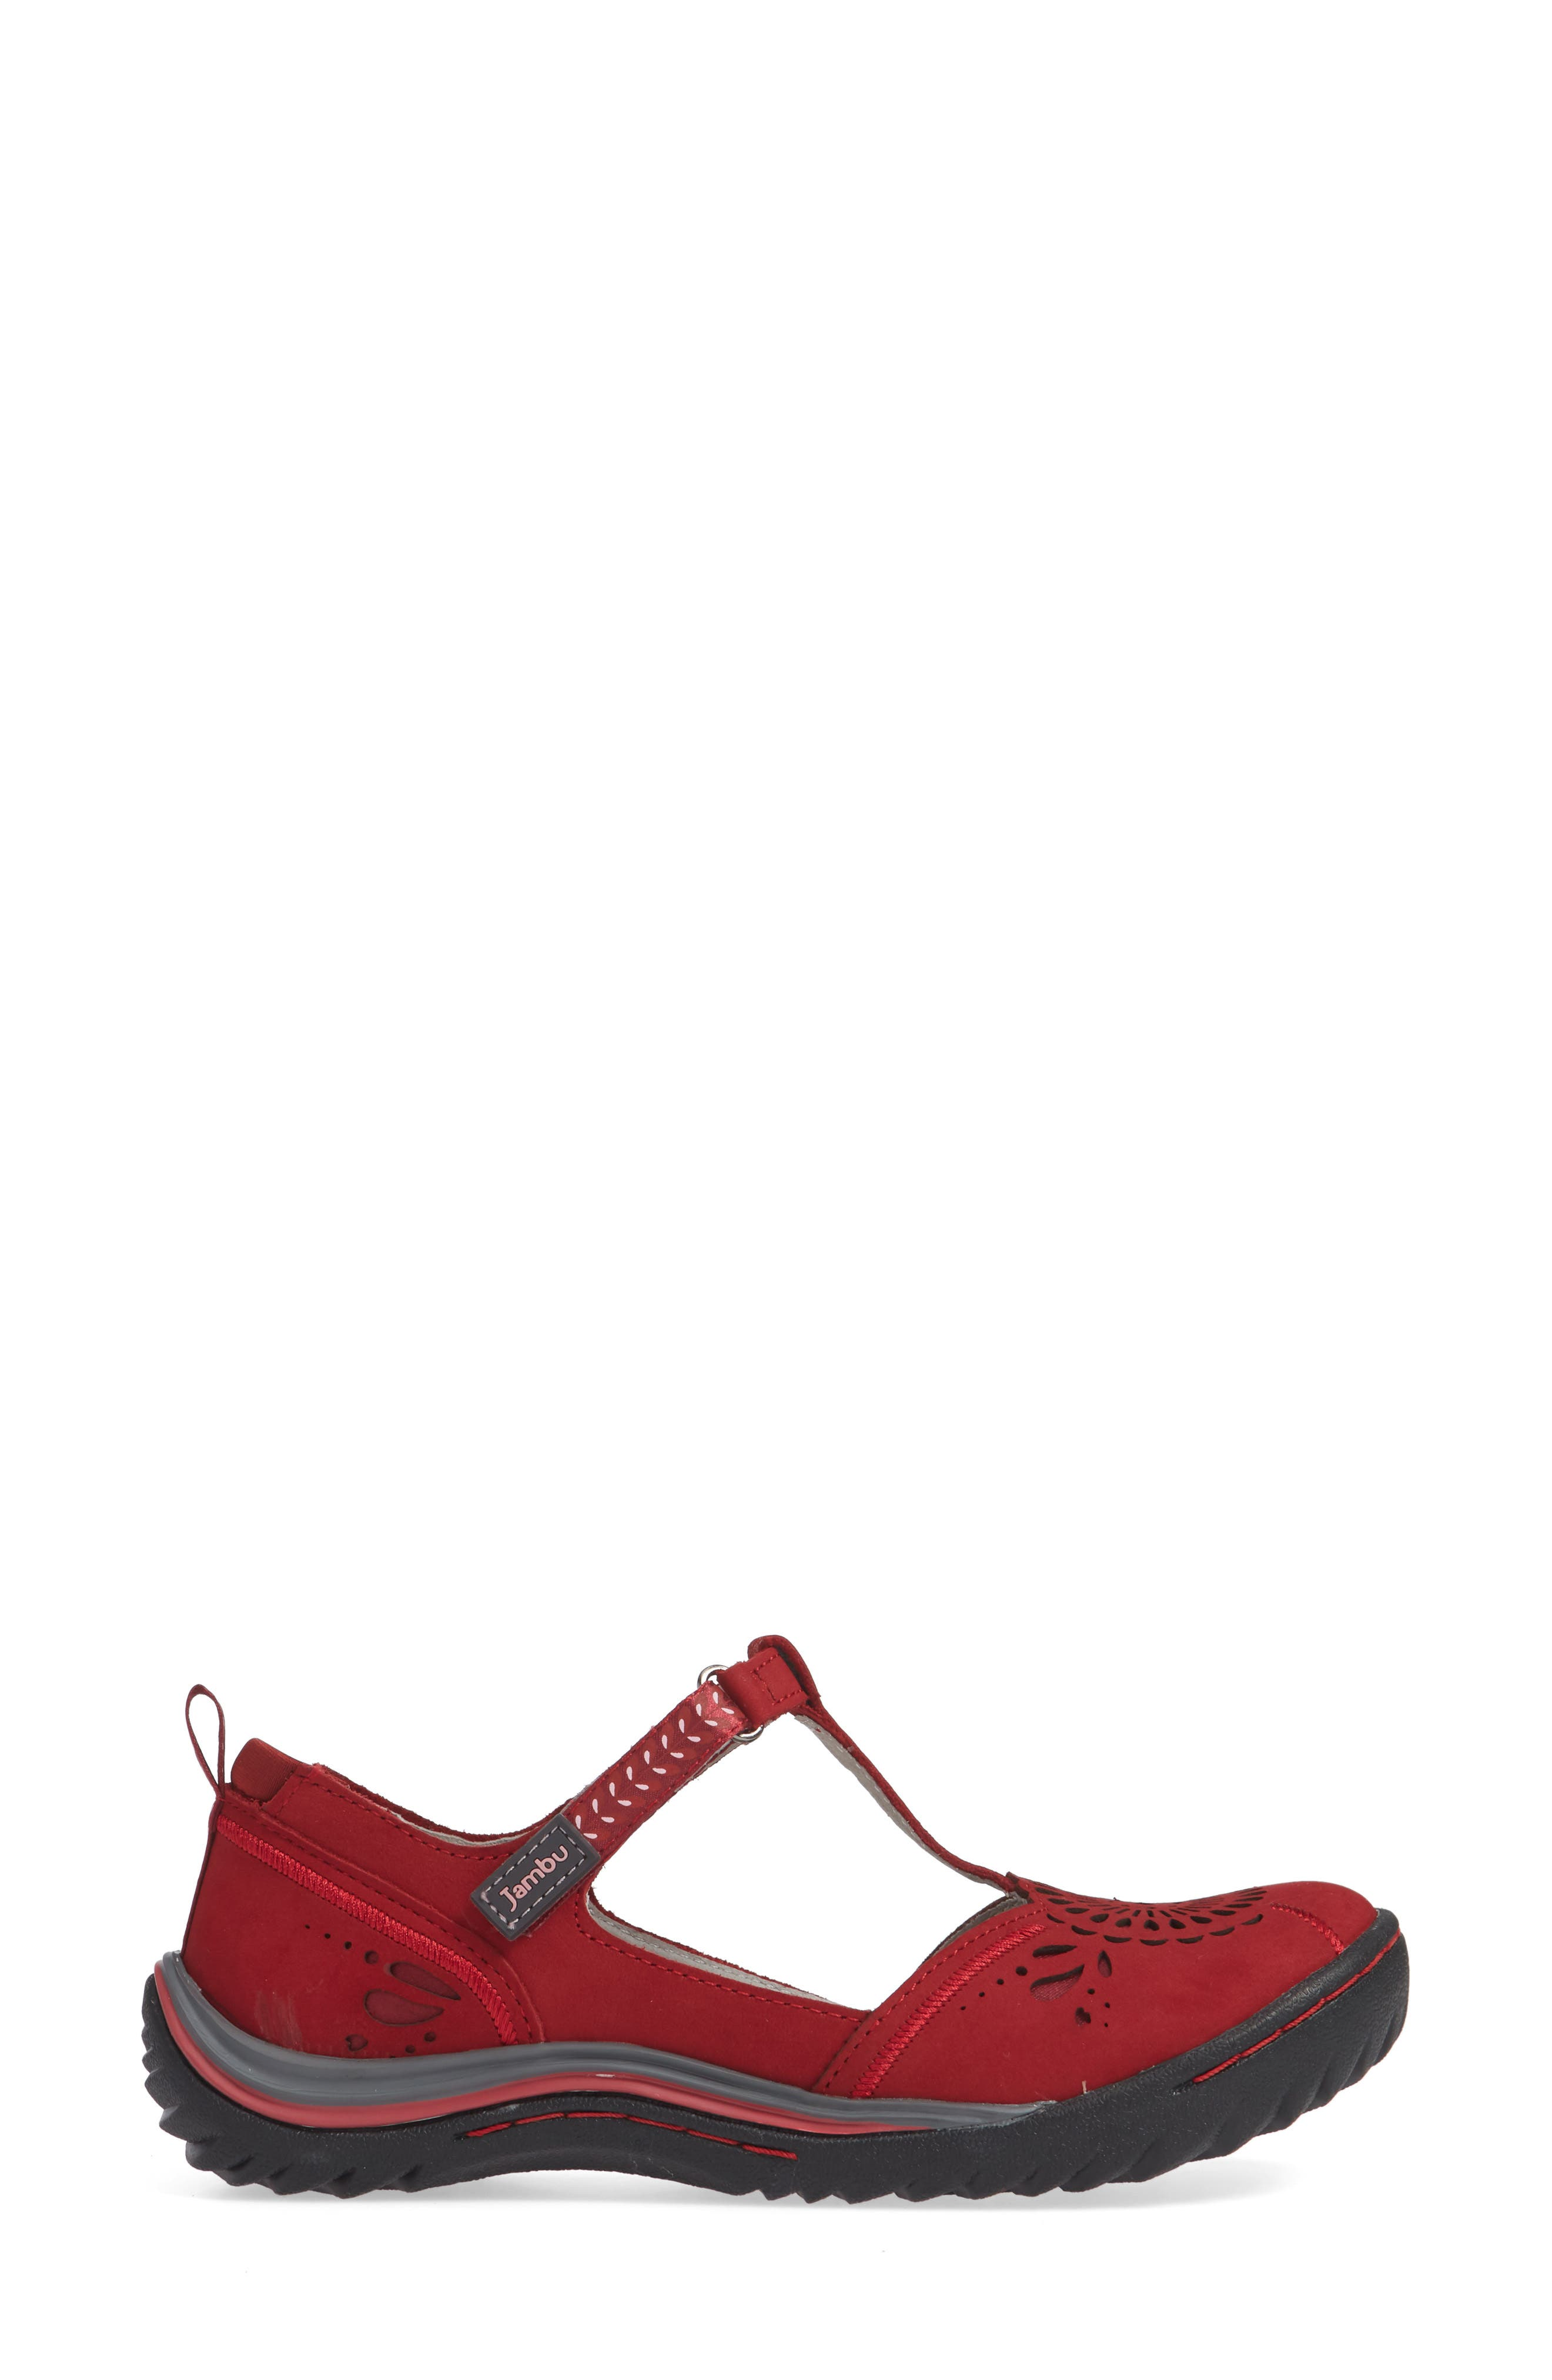 Sunkist Strappy Sneaker,                             Alternate thumbnail 3, color,                             RED/ PETAL NUBUCK LEATHER